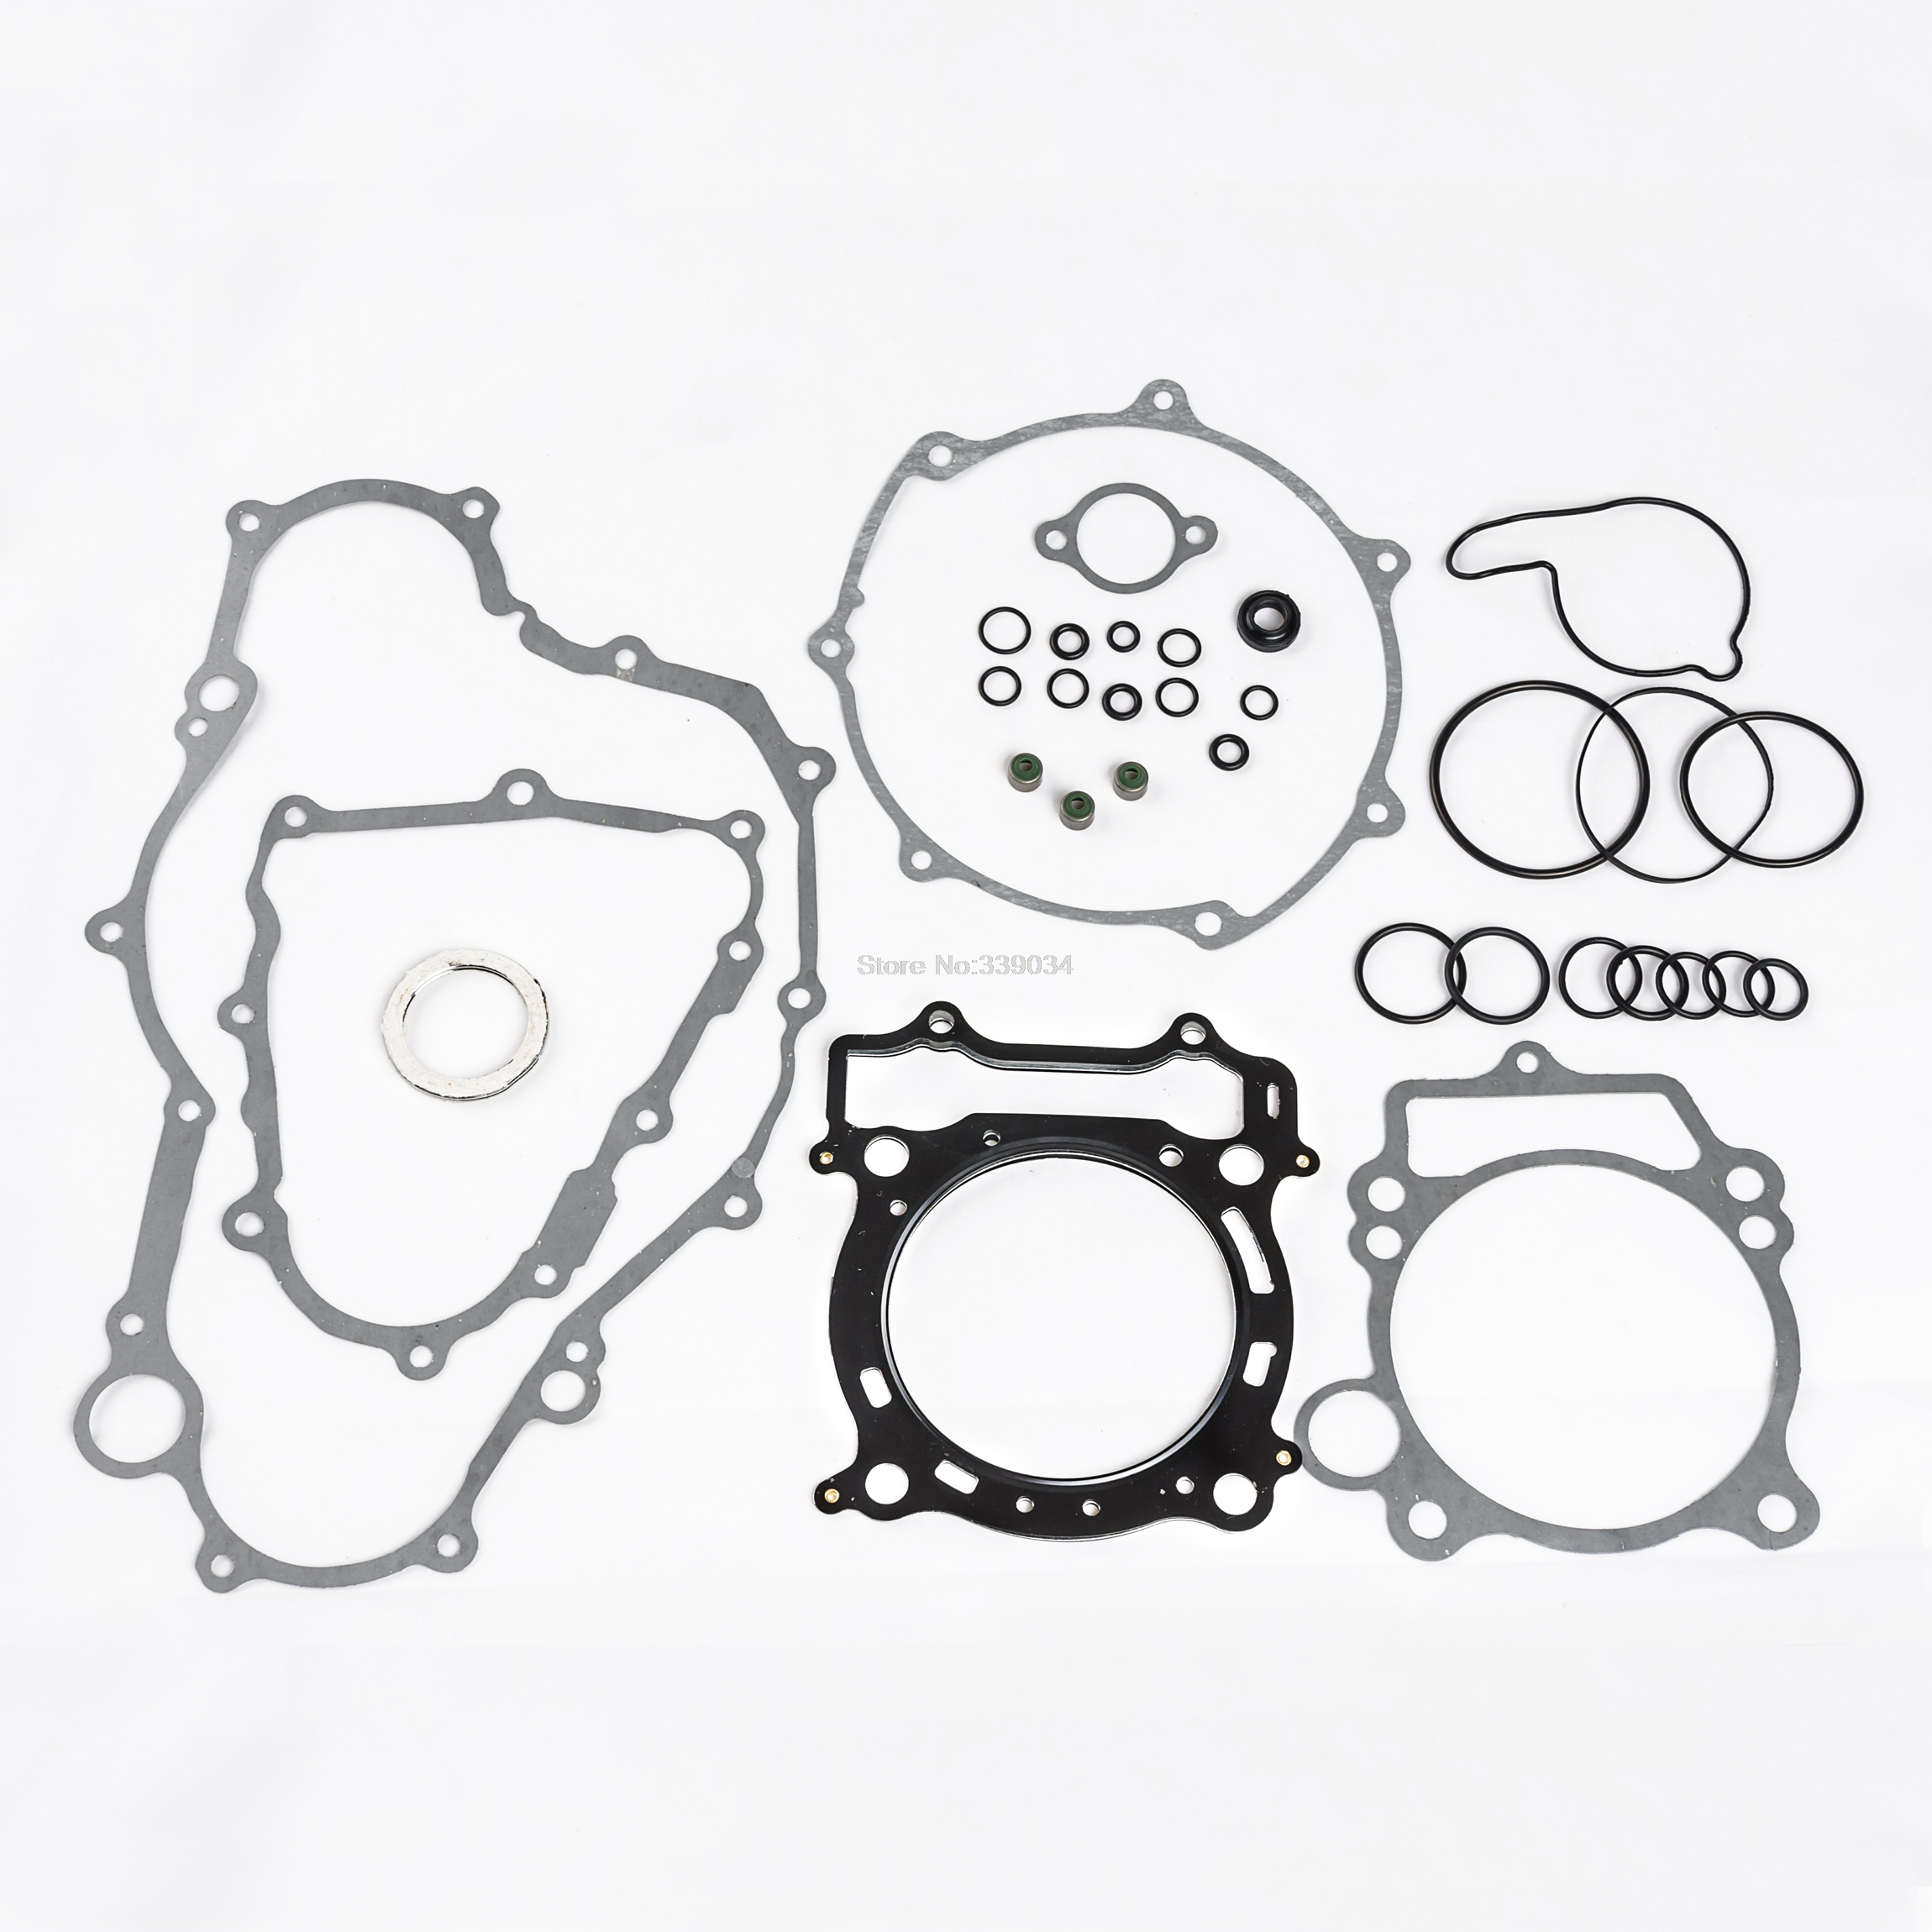 Complete Motorcycle Engine Gasket Set Kit For Yamaha